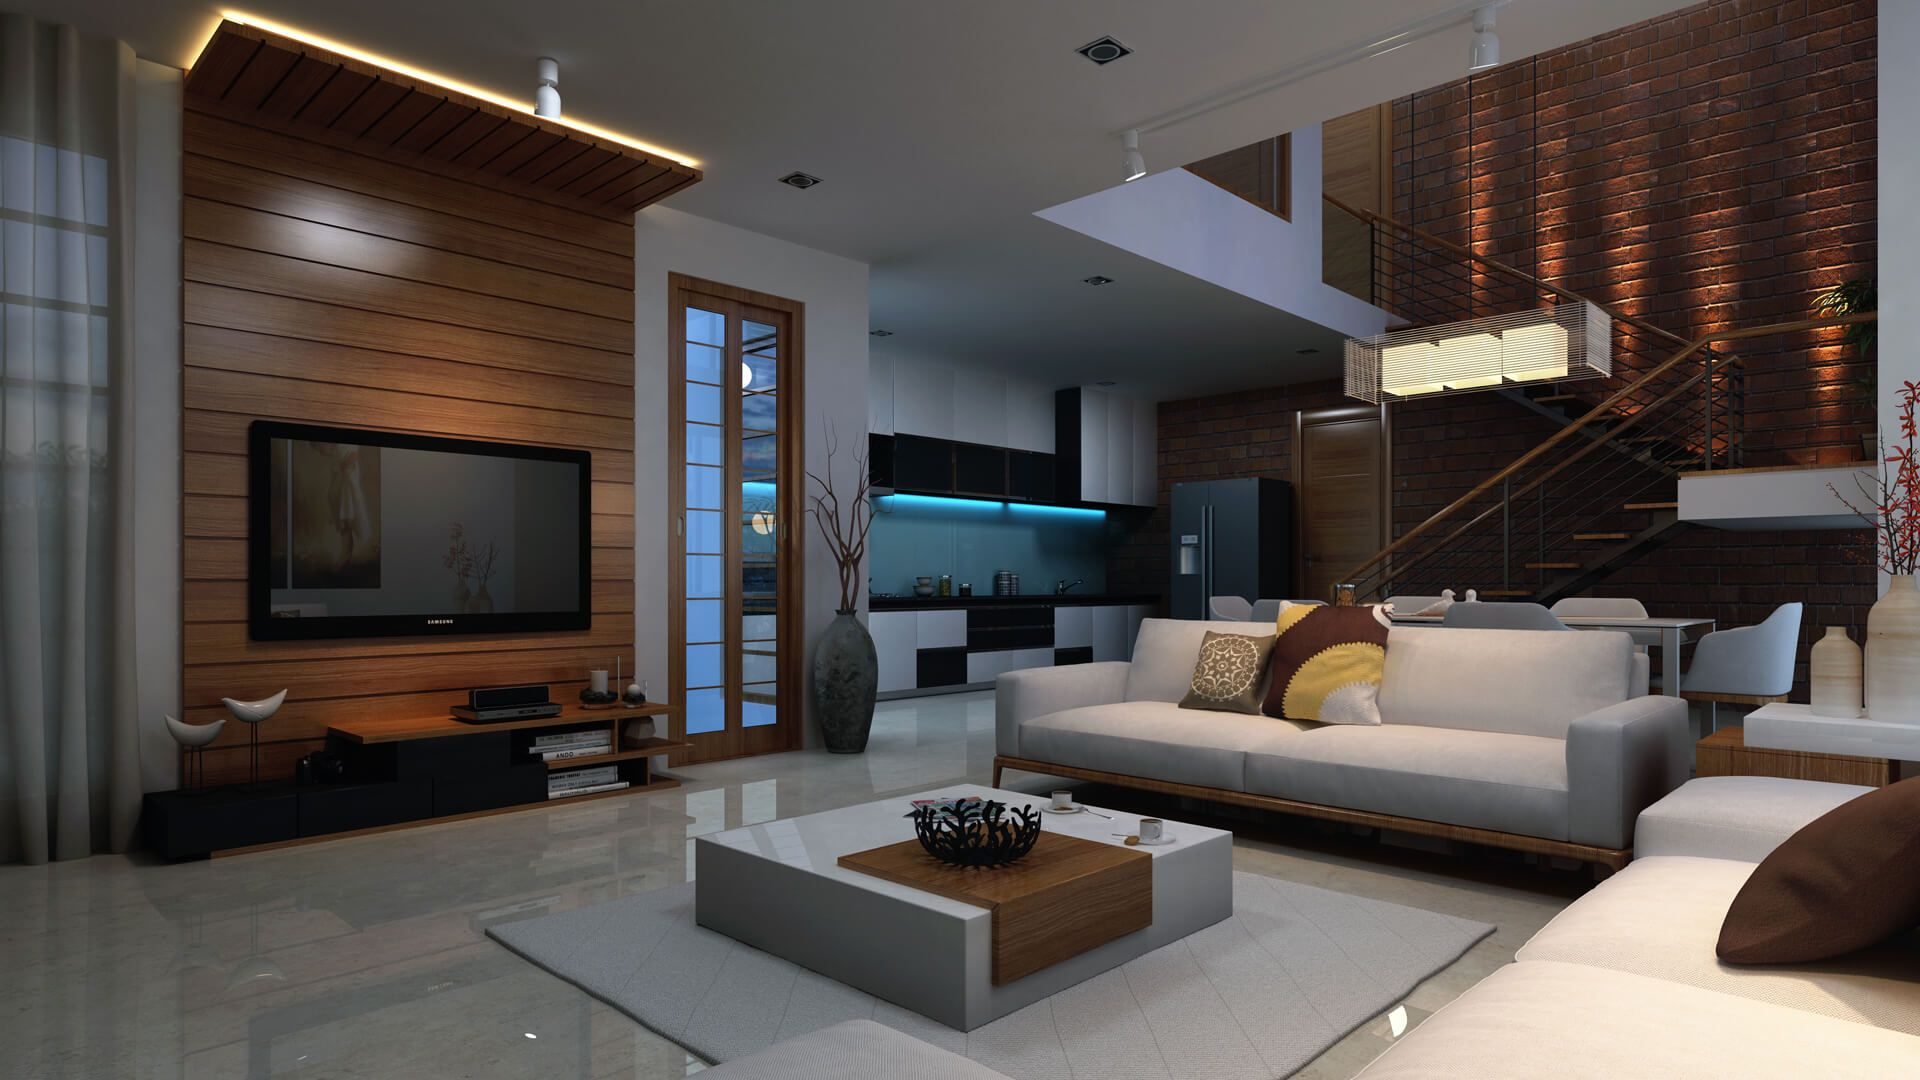 3d #residential #living room #Interior #cgi design rendering